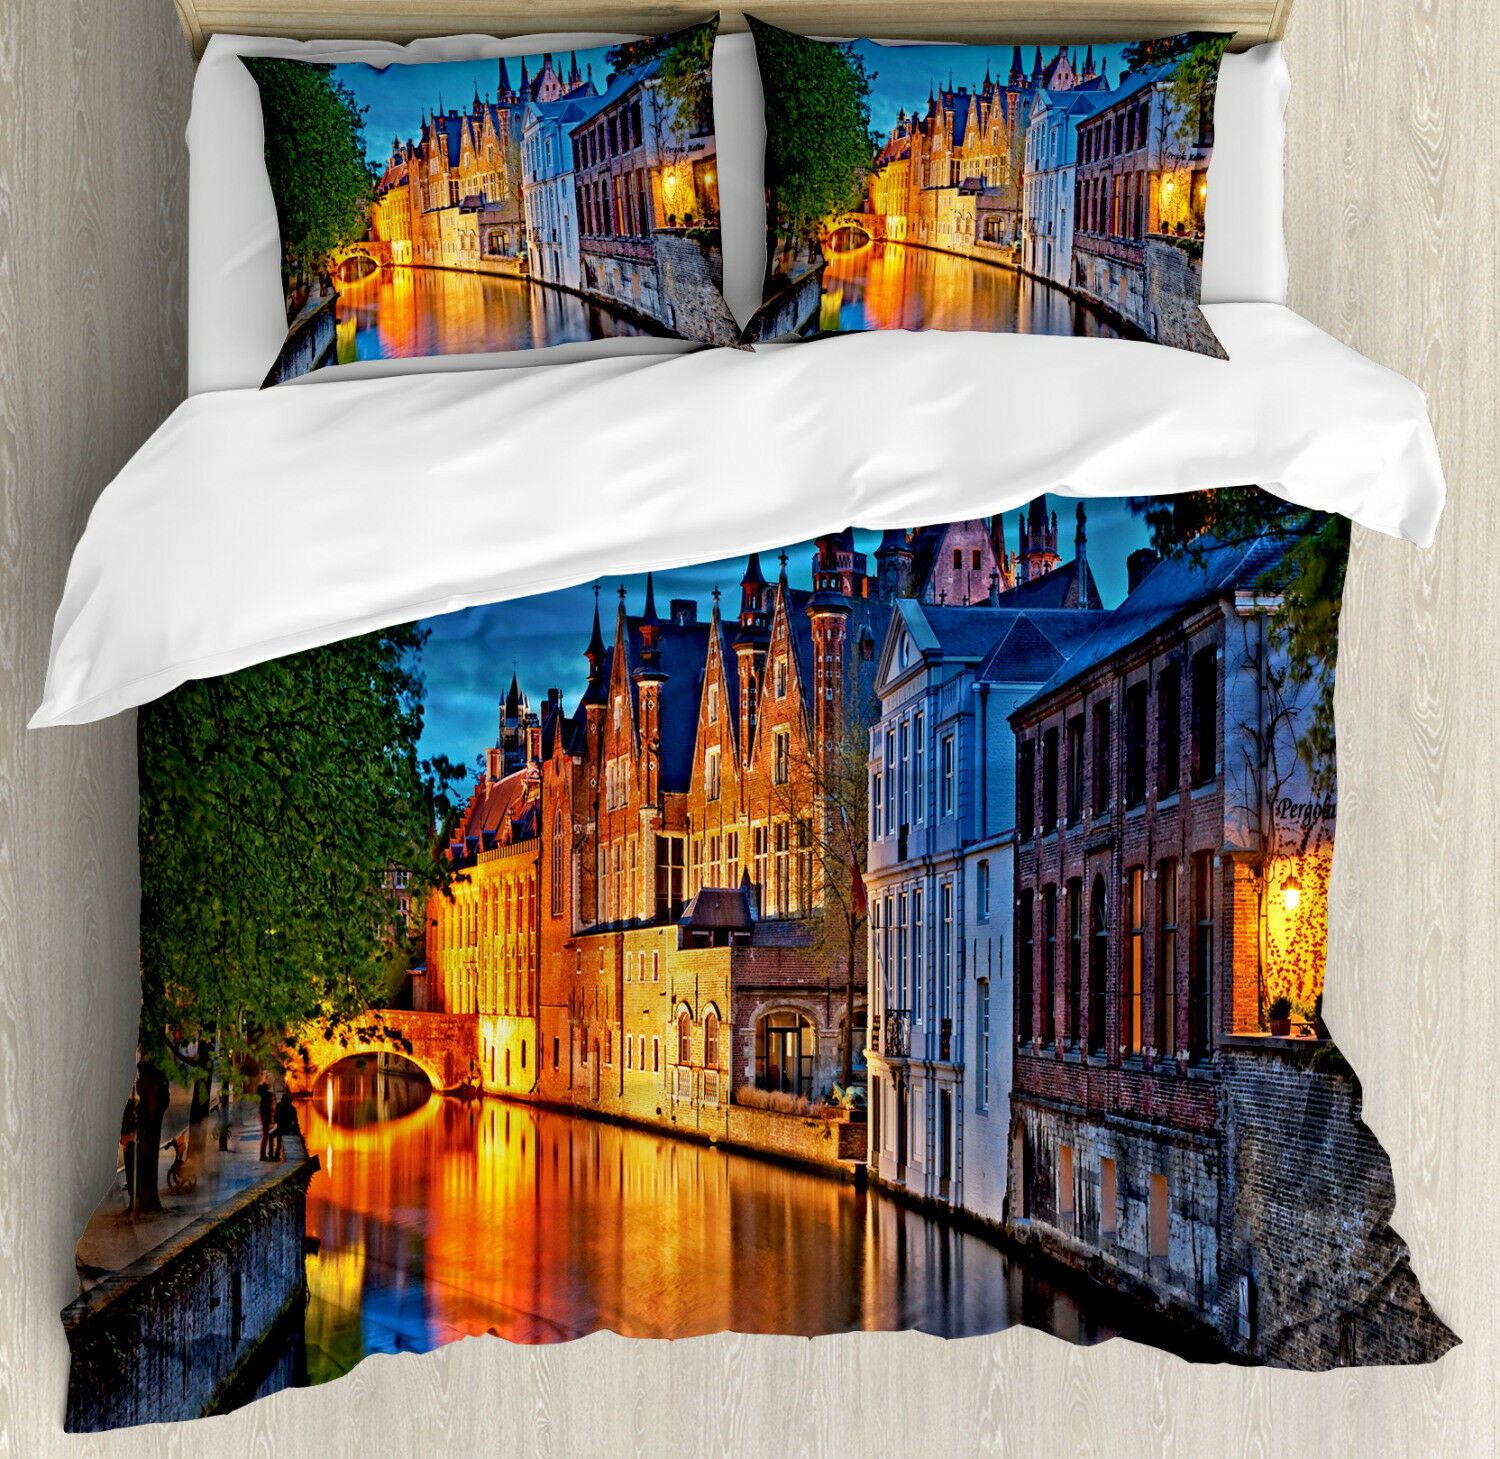 colorful Duvet Cover Set with Pillow Shams Middle Age Building Print